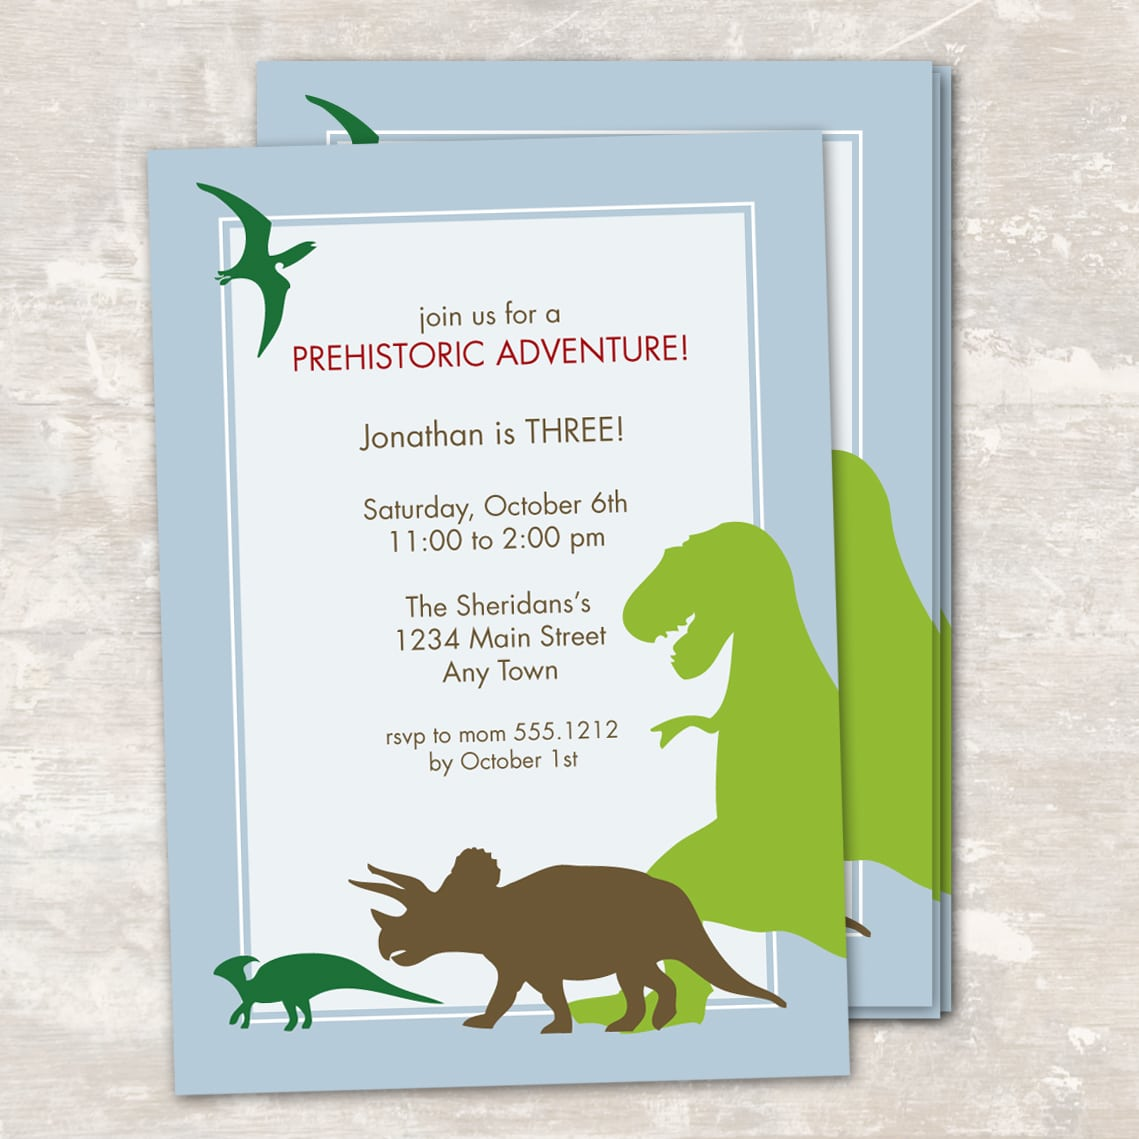 Dinosaur Party Invitations Free Printable - Mickey Mouse Invitations ...